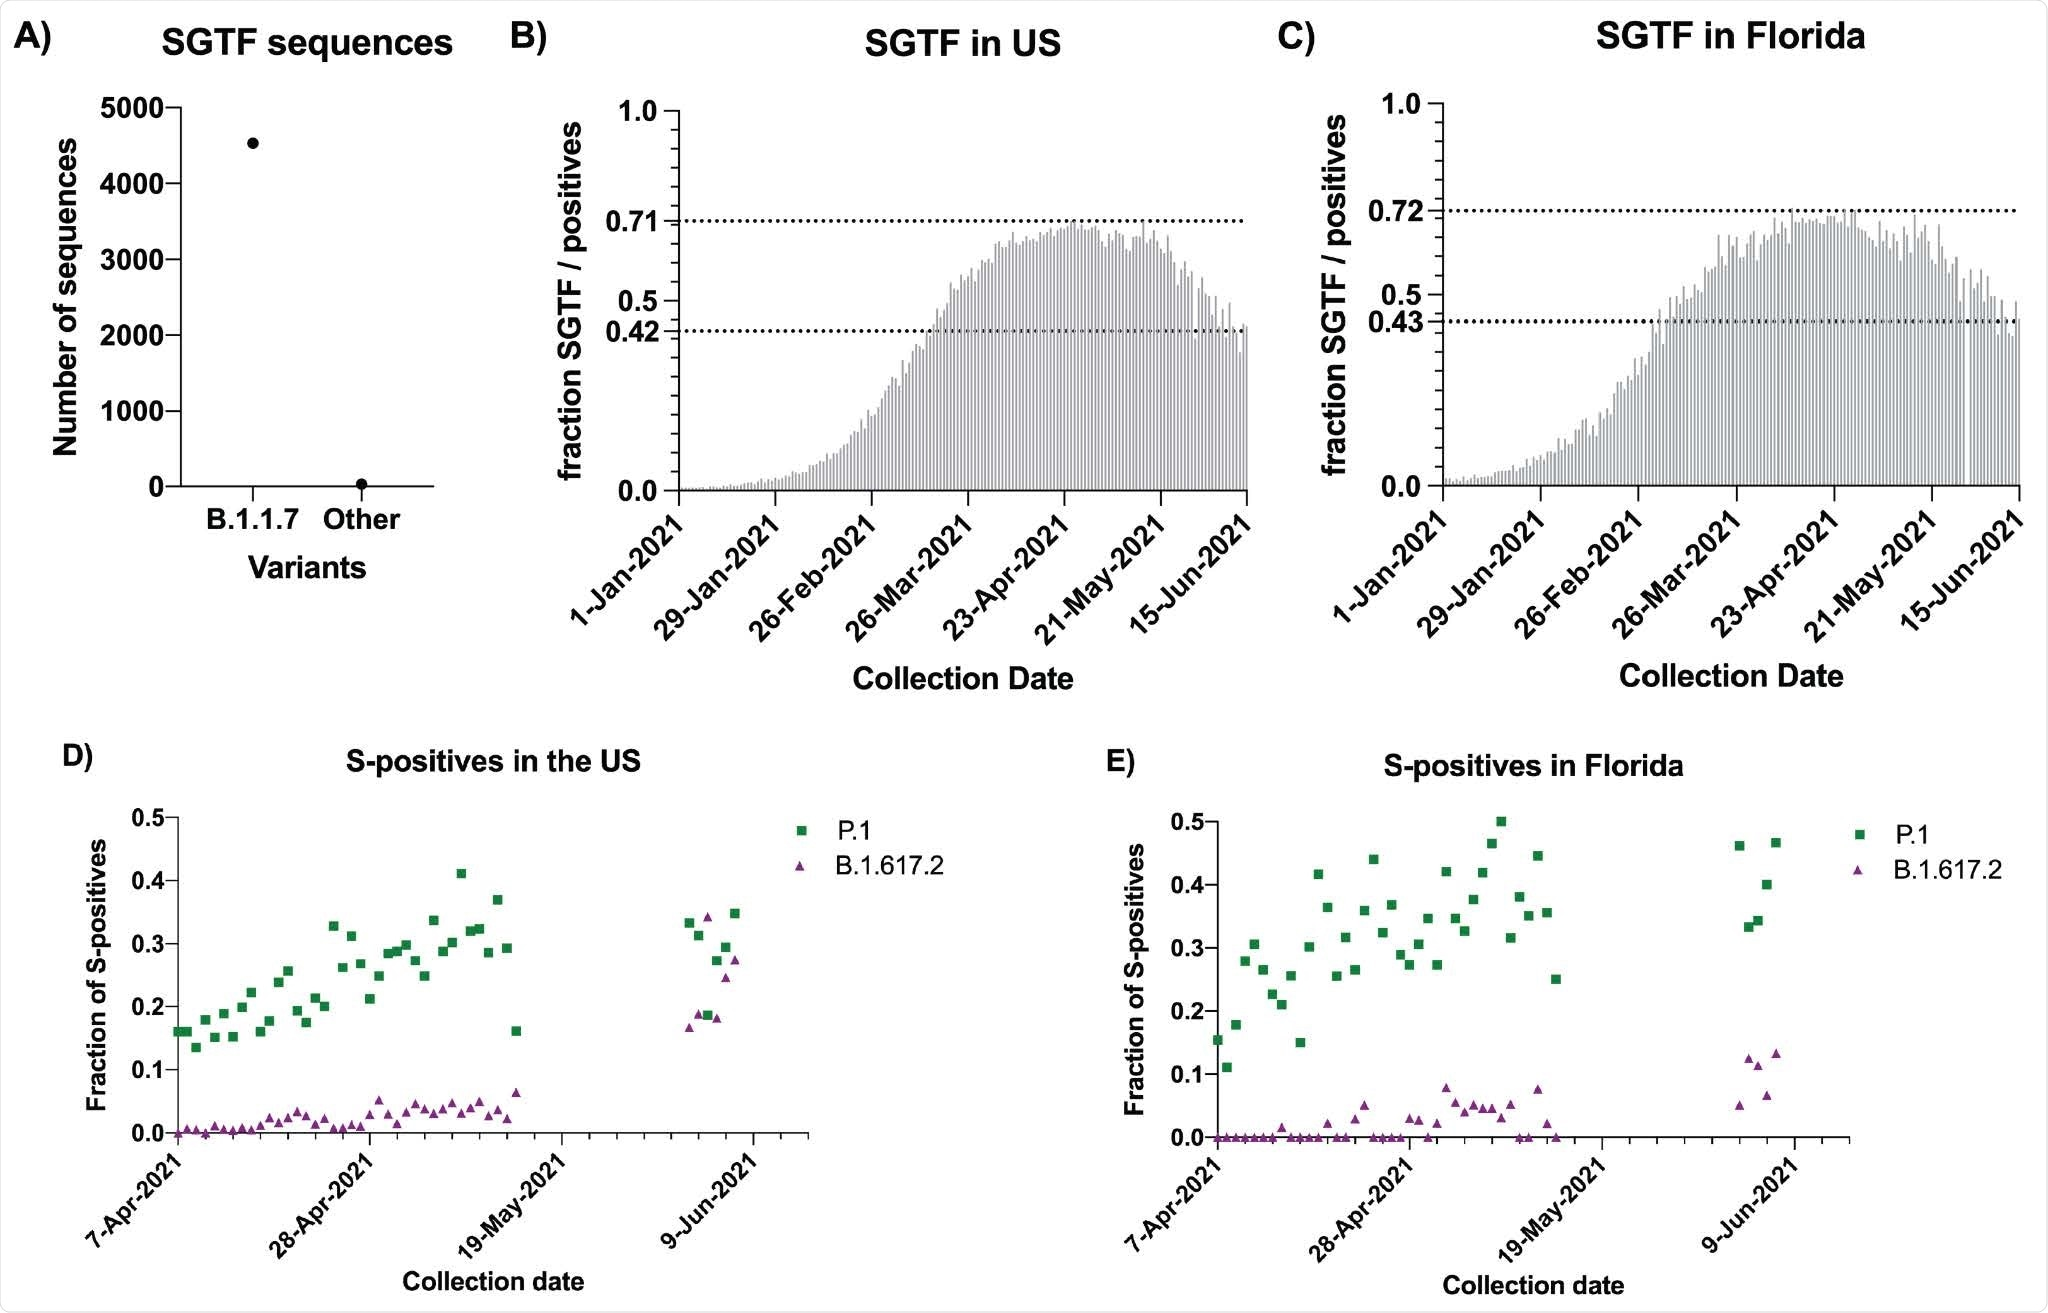 B.1.1.7 is being replaced by B.1.617.2 and P.1 in the United States. A) Counts of S-Gene Target Failure (SGTF) sequenced in May and June 2021 that were B.1.1.7 or Other variants. B) Fraction of SGTF to total positives per day in the US. The two dotted lines correspond to the maximum level observed in the US (71%) and the current level (42%). C) Fraction of SGTF to total positives per day in Florida. The two dotted lines correspond to the maximum level observed in Florida (72%) and the current level (43%). D) Fraction of S-positives sequenced that were either B.1.617.2 (purple triangles) or P.1 (green squares) by day in the US. No sequences were available from May 14 to June 2 2021. E) Fraction of S-positives sequenced that were either B.1.617.2 (purple triangles) or P.1 (green squares) by day in the US.